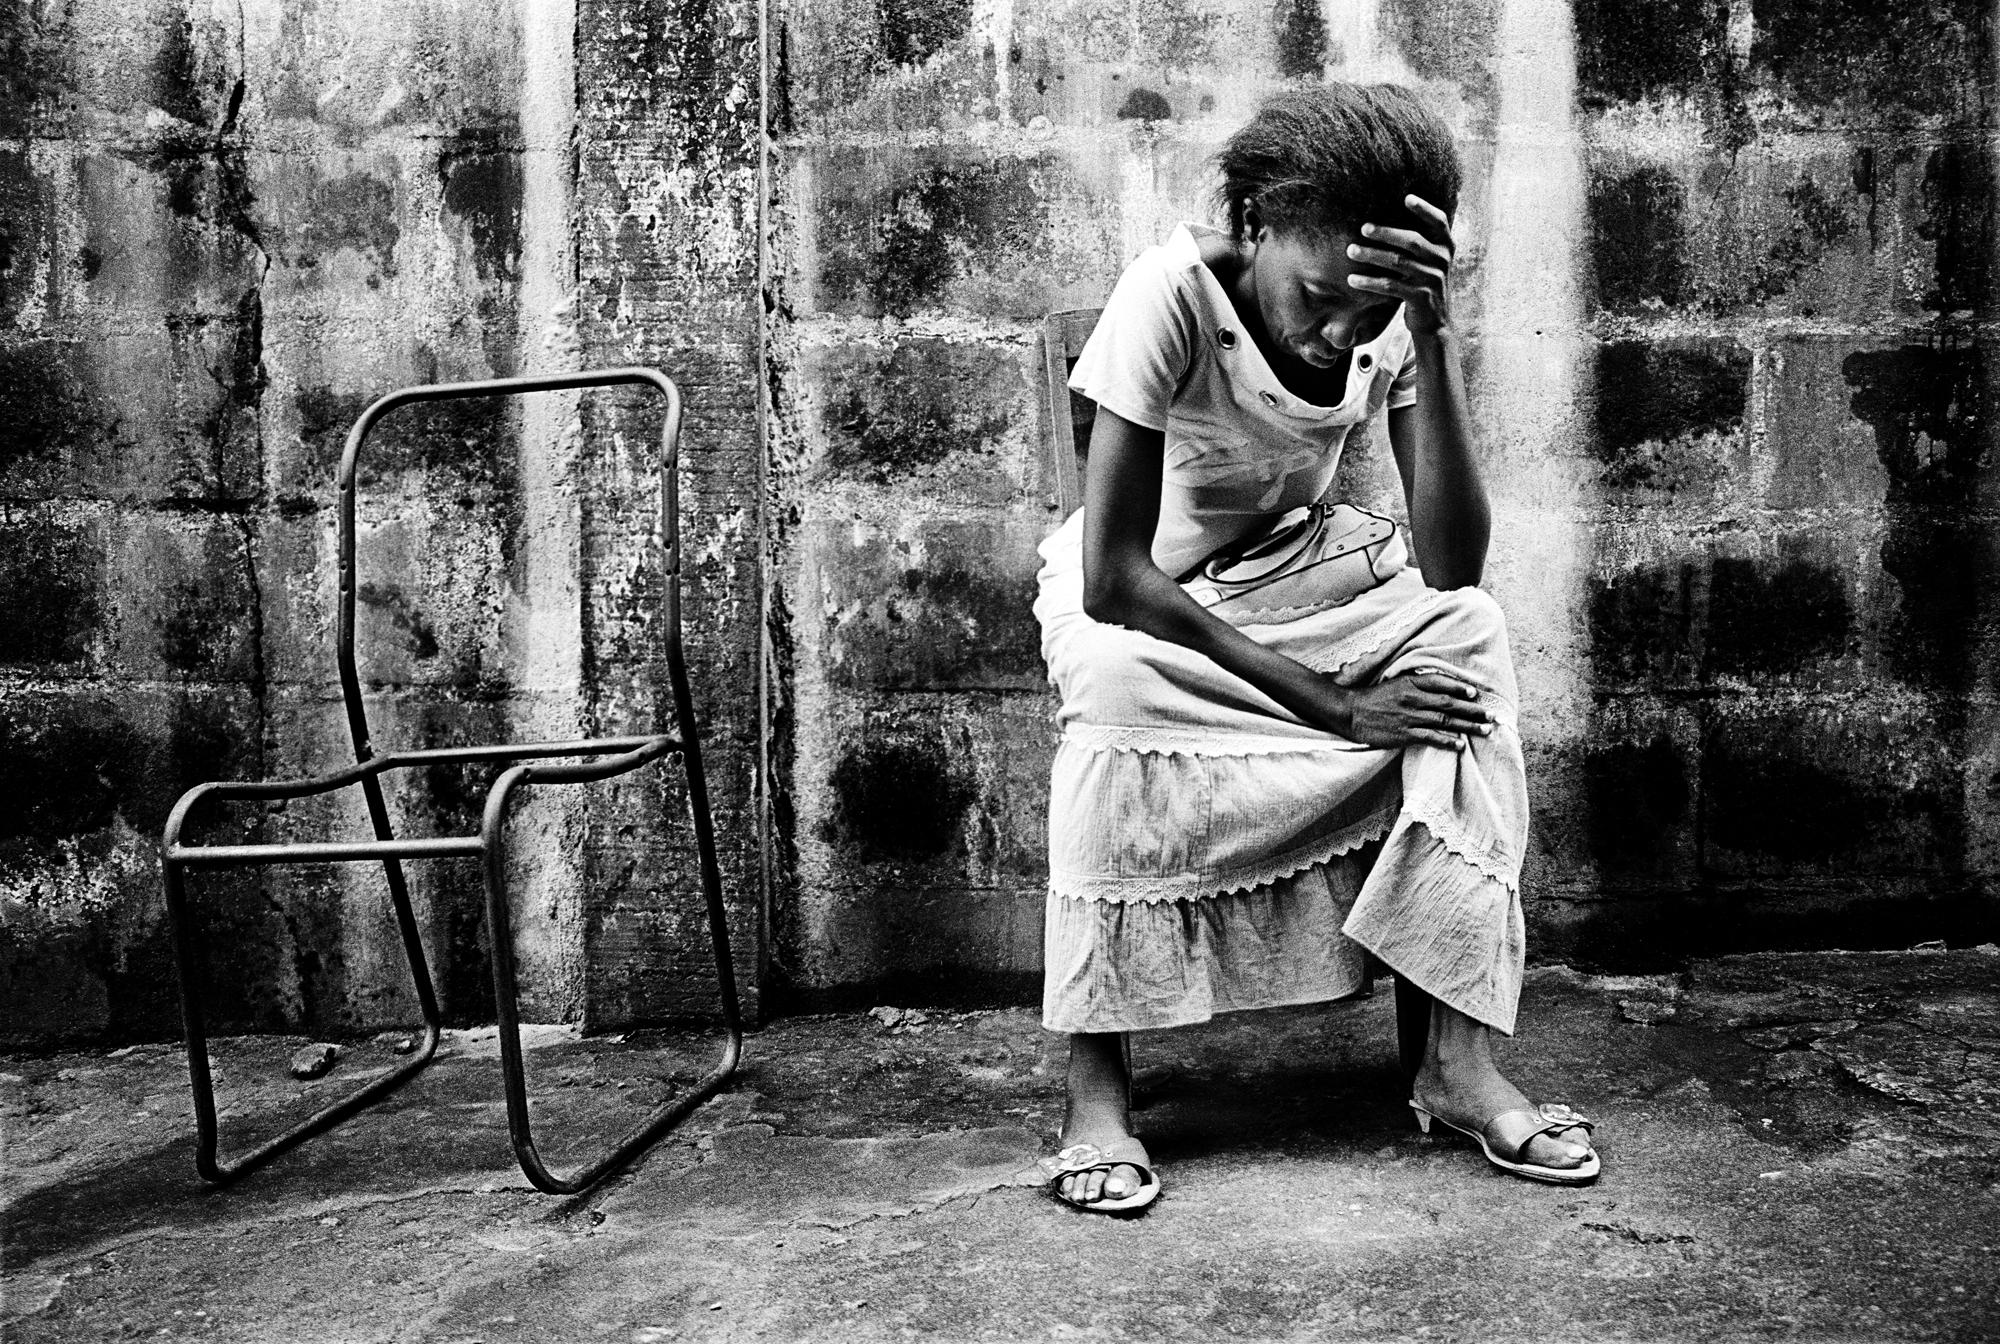 SIERRA LEONE Freetown A woman sits next to an empty chair at the City of Rest (CORE) drug rehabilitation centre. The Deliverance Ministry runs the centre, which offers counselling and support for recovering drug addicts, alcoholics and traumatised or delinquent youths. The ministry tries to address problems of addiction, delinquency and even cases of demonic possession with rest, food and prayer.